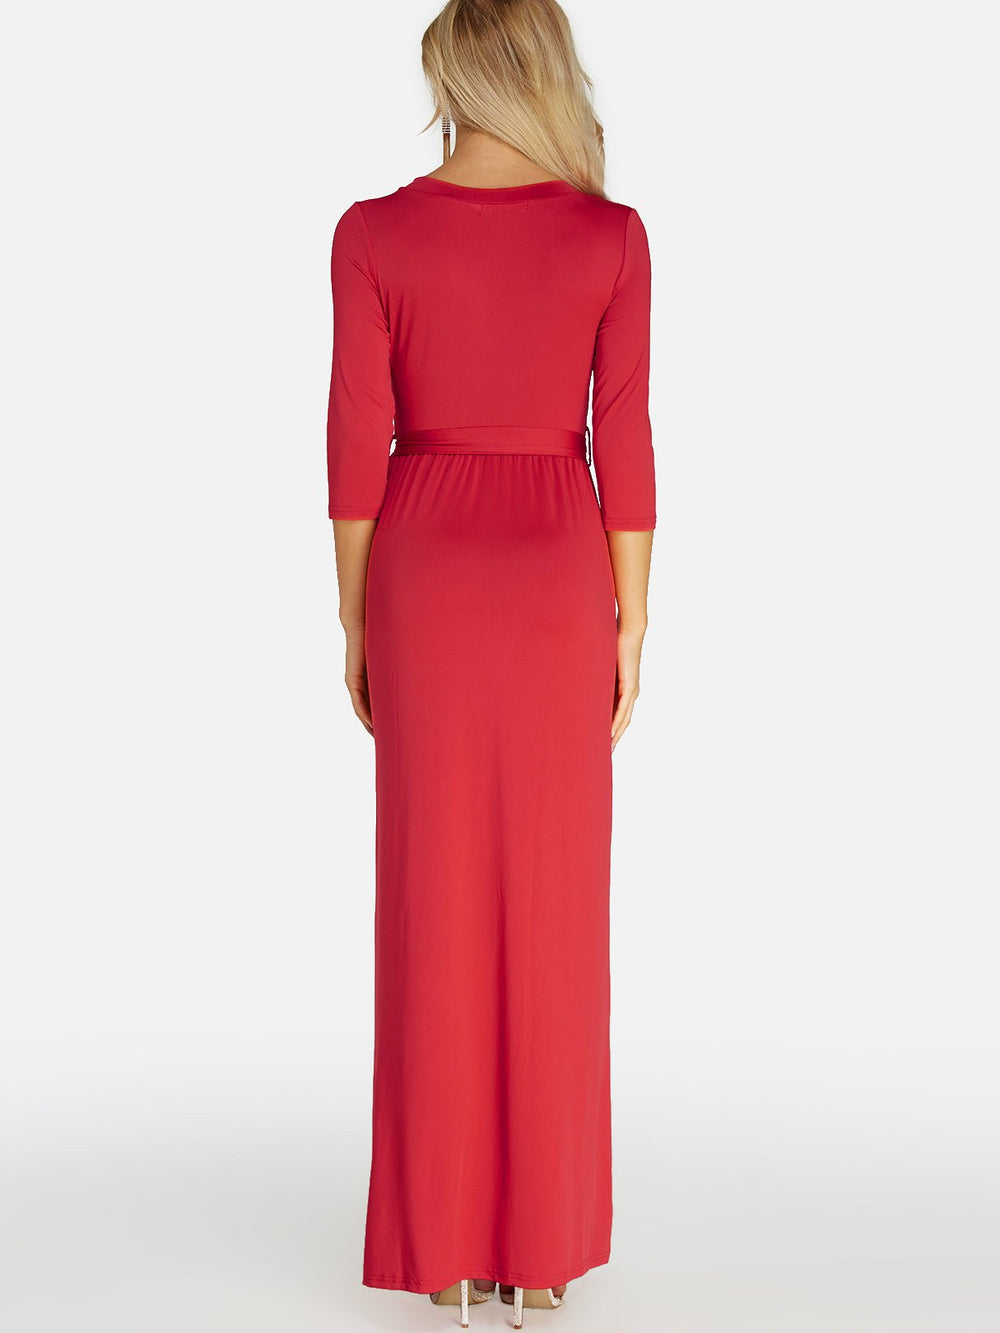 Womens Red Maxi Dresses